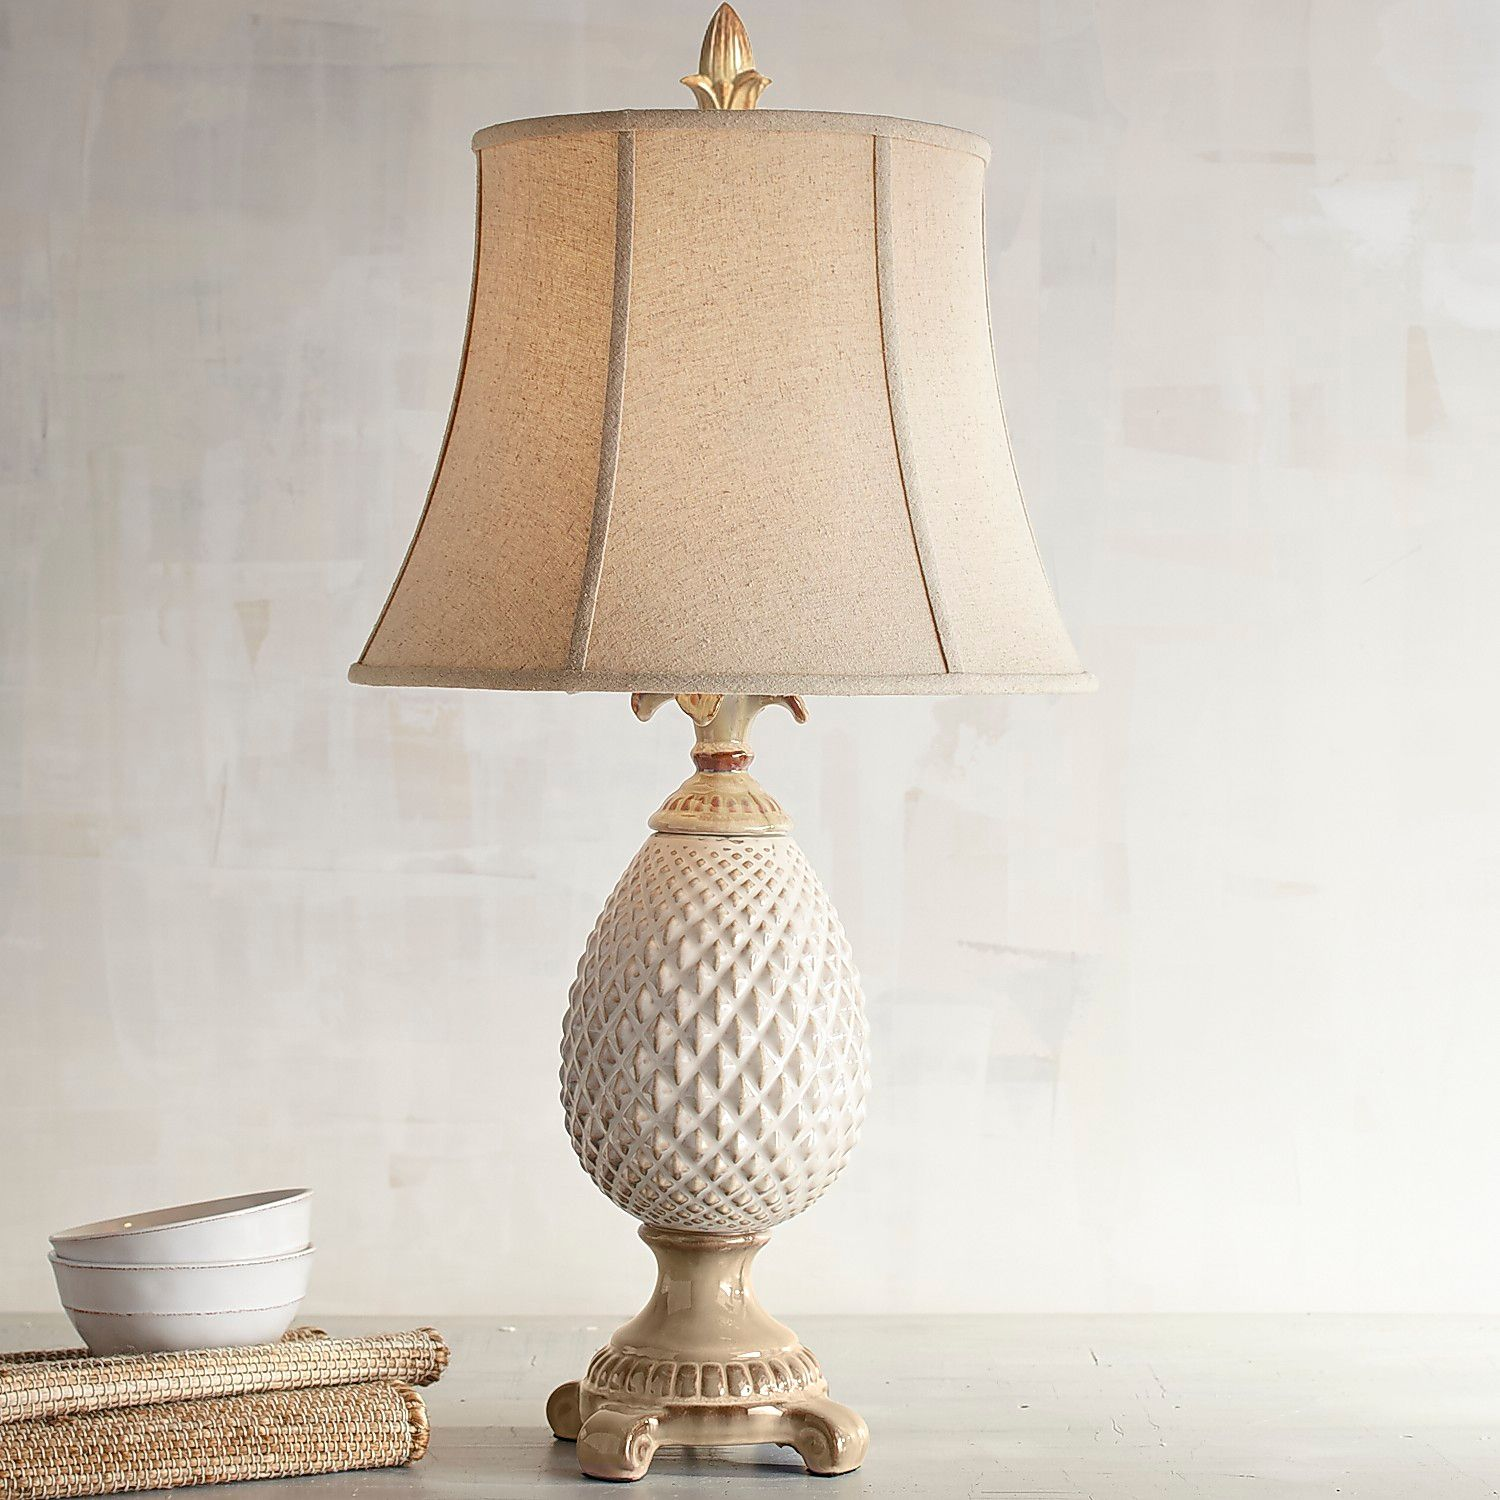 pineapple table lamp pier imports one accent lamps metal tray beach farm white legs small console cabinet glass fancy bedside tables modern dining room sets that use batteries